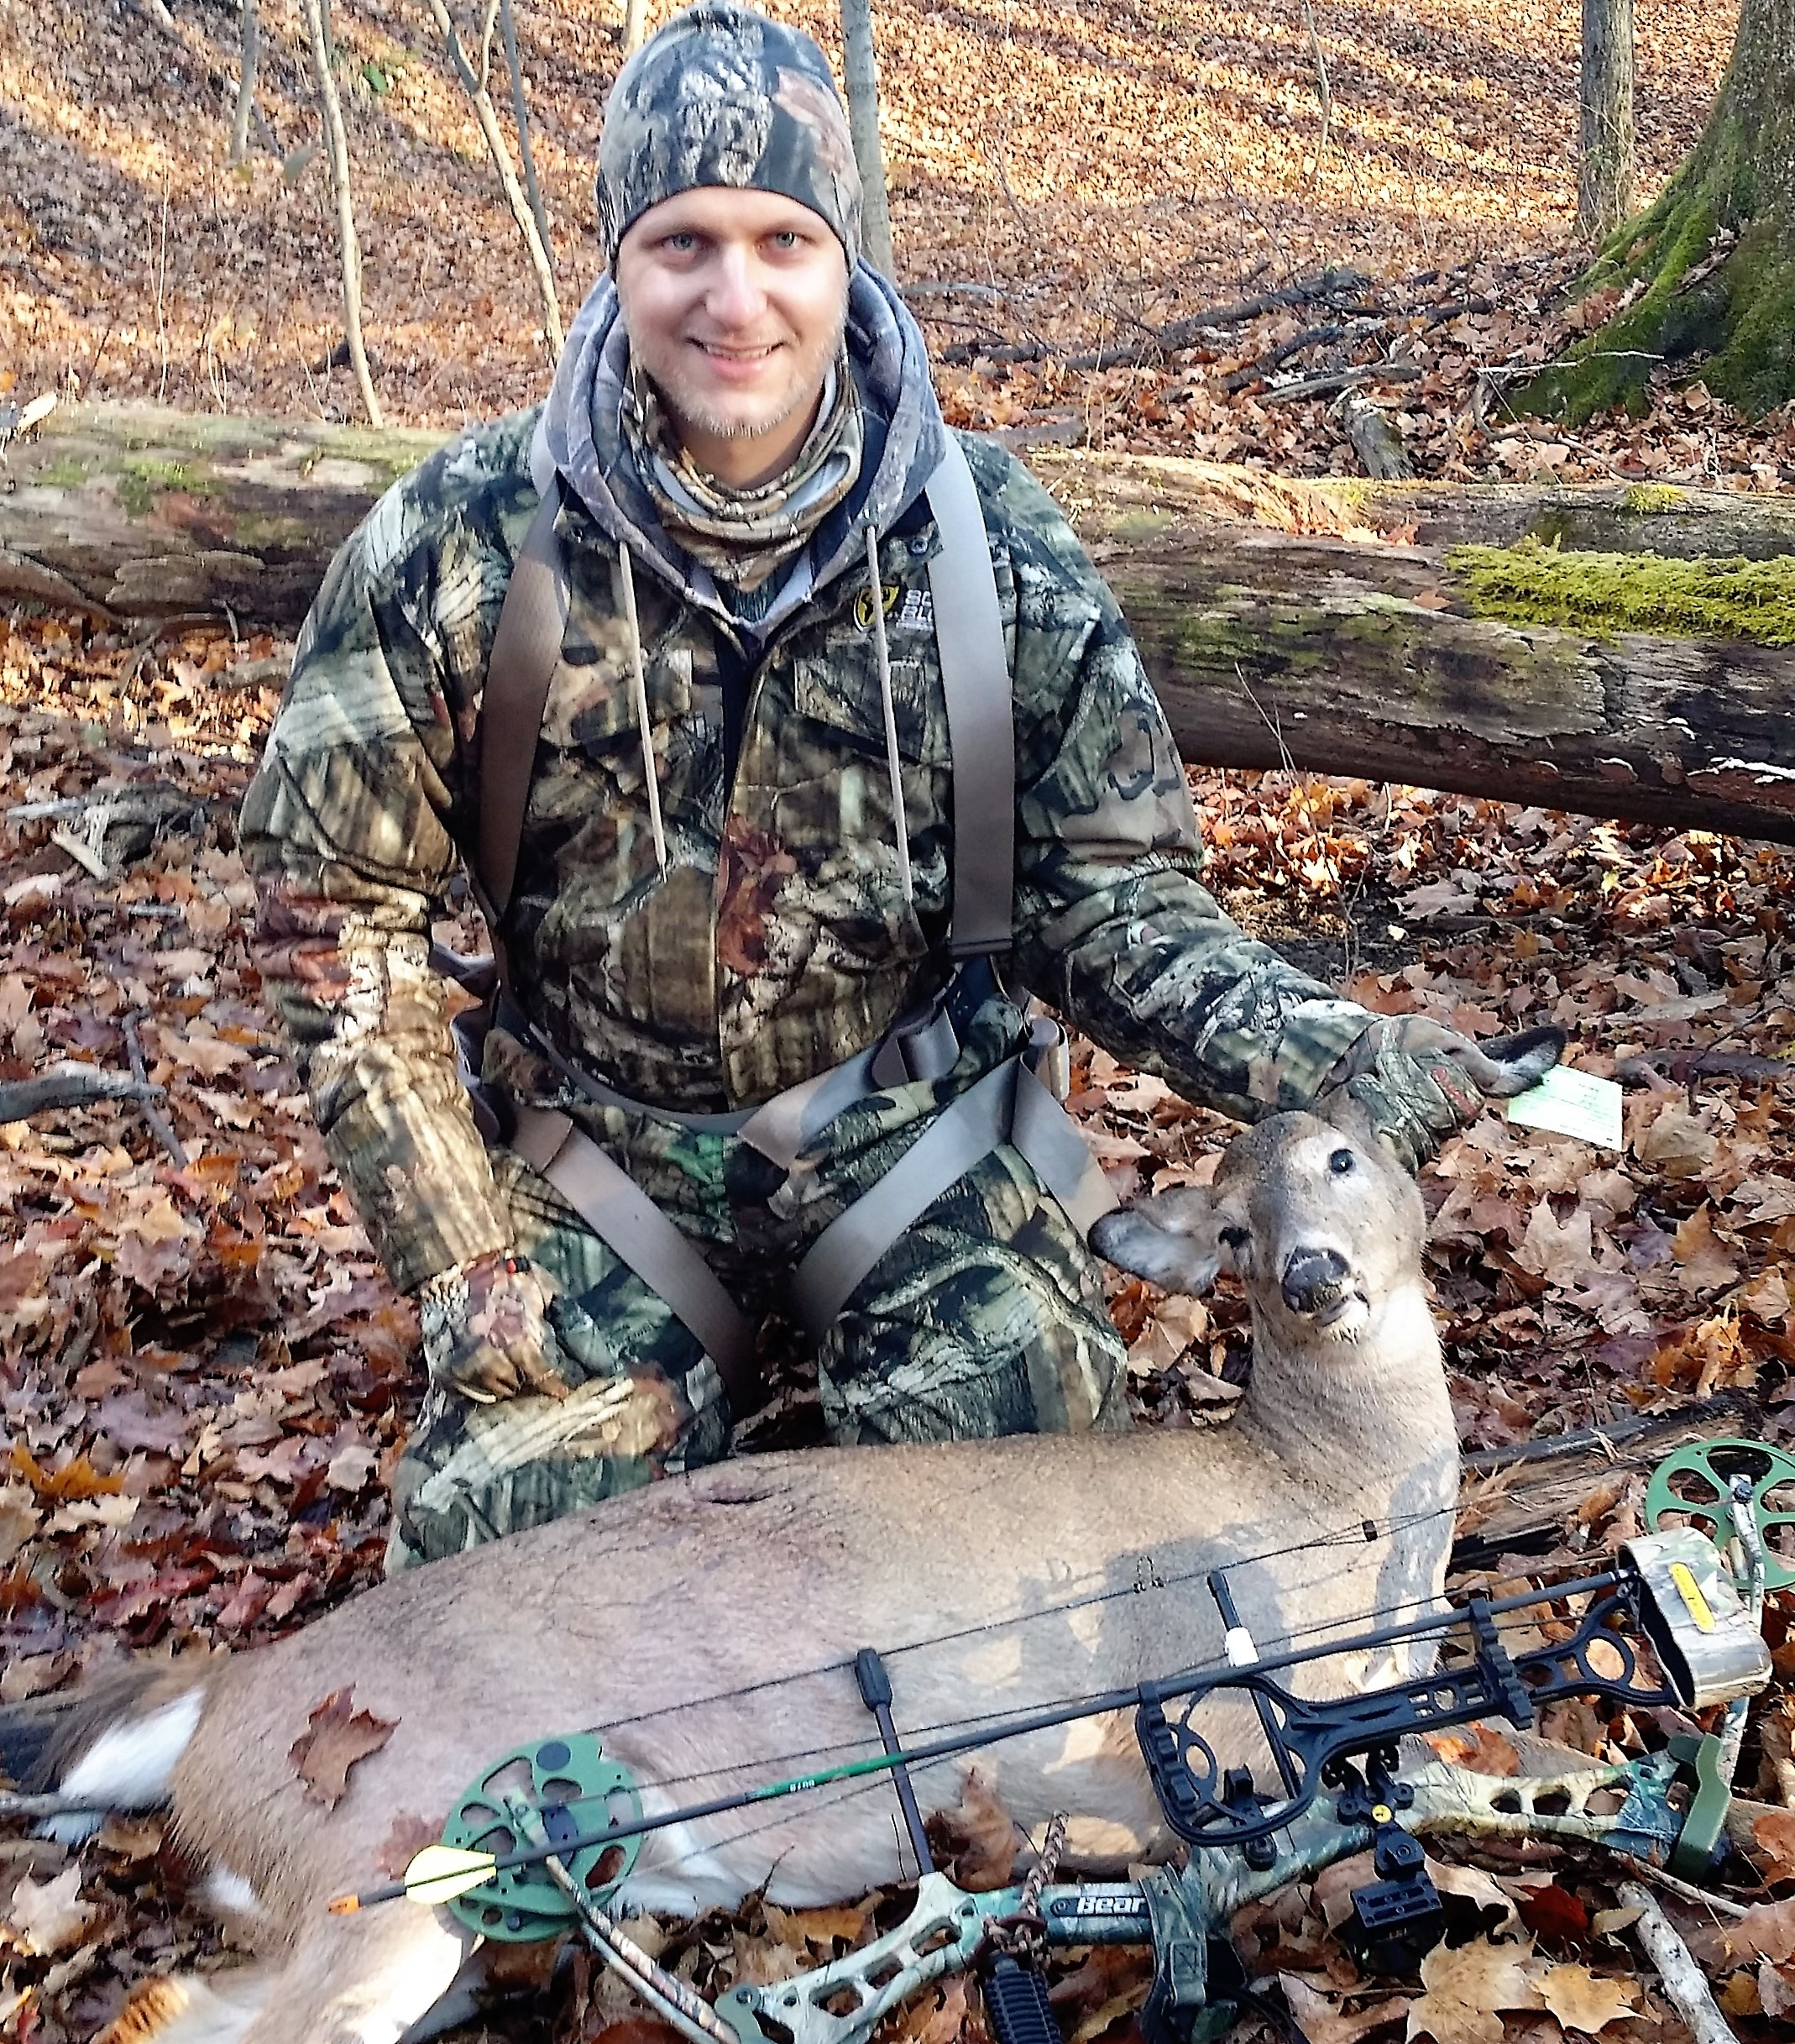 New York Big Game Hunting Firearms Season for Southern Zone Begins November 19